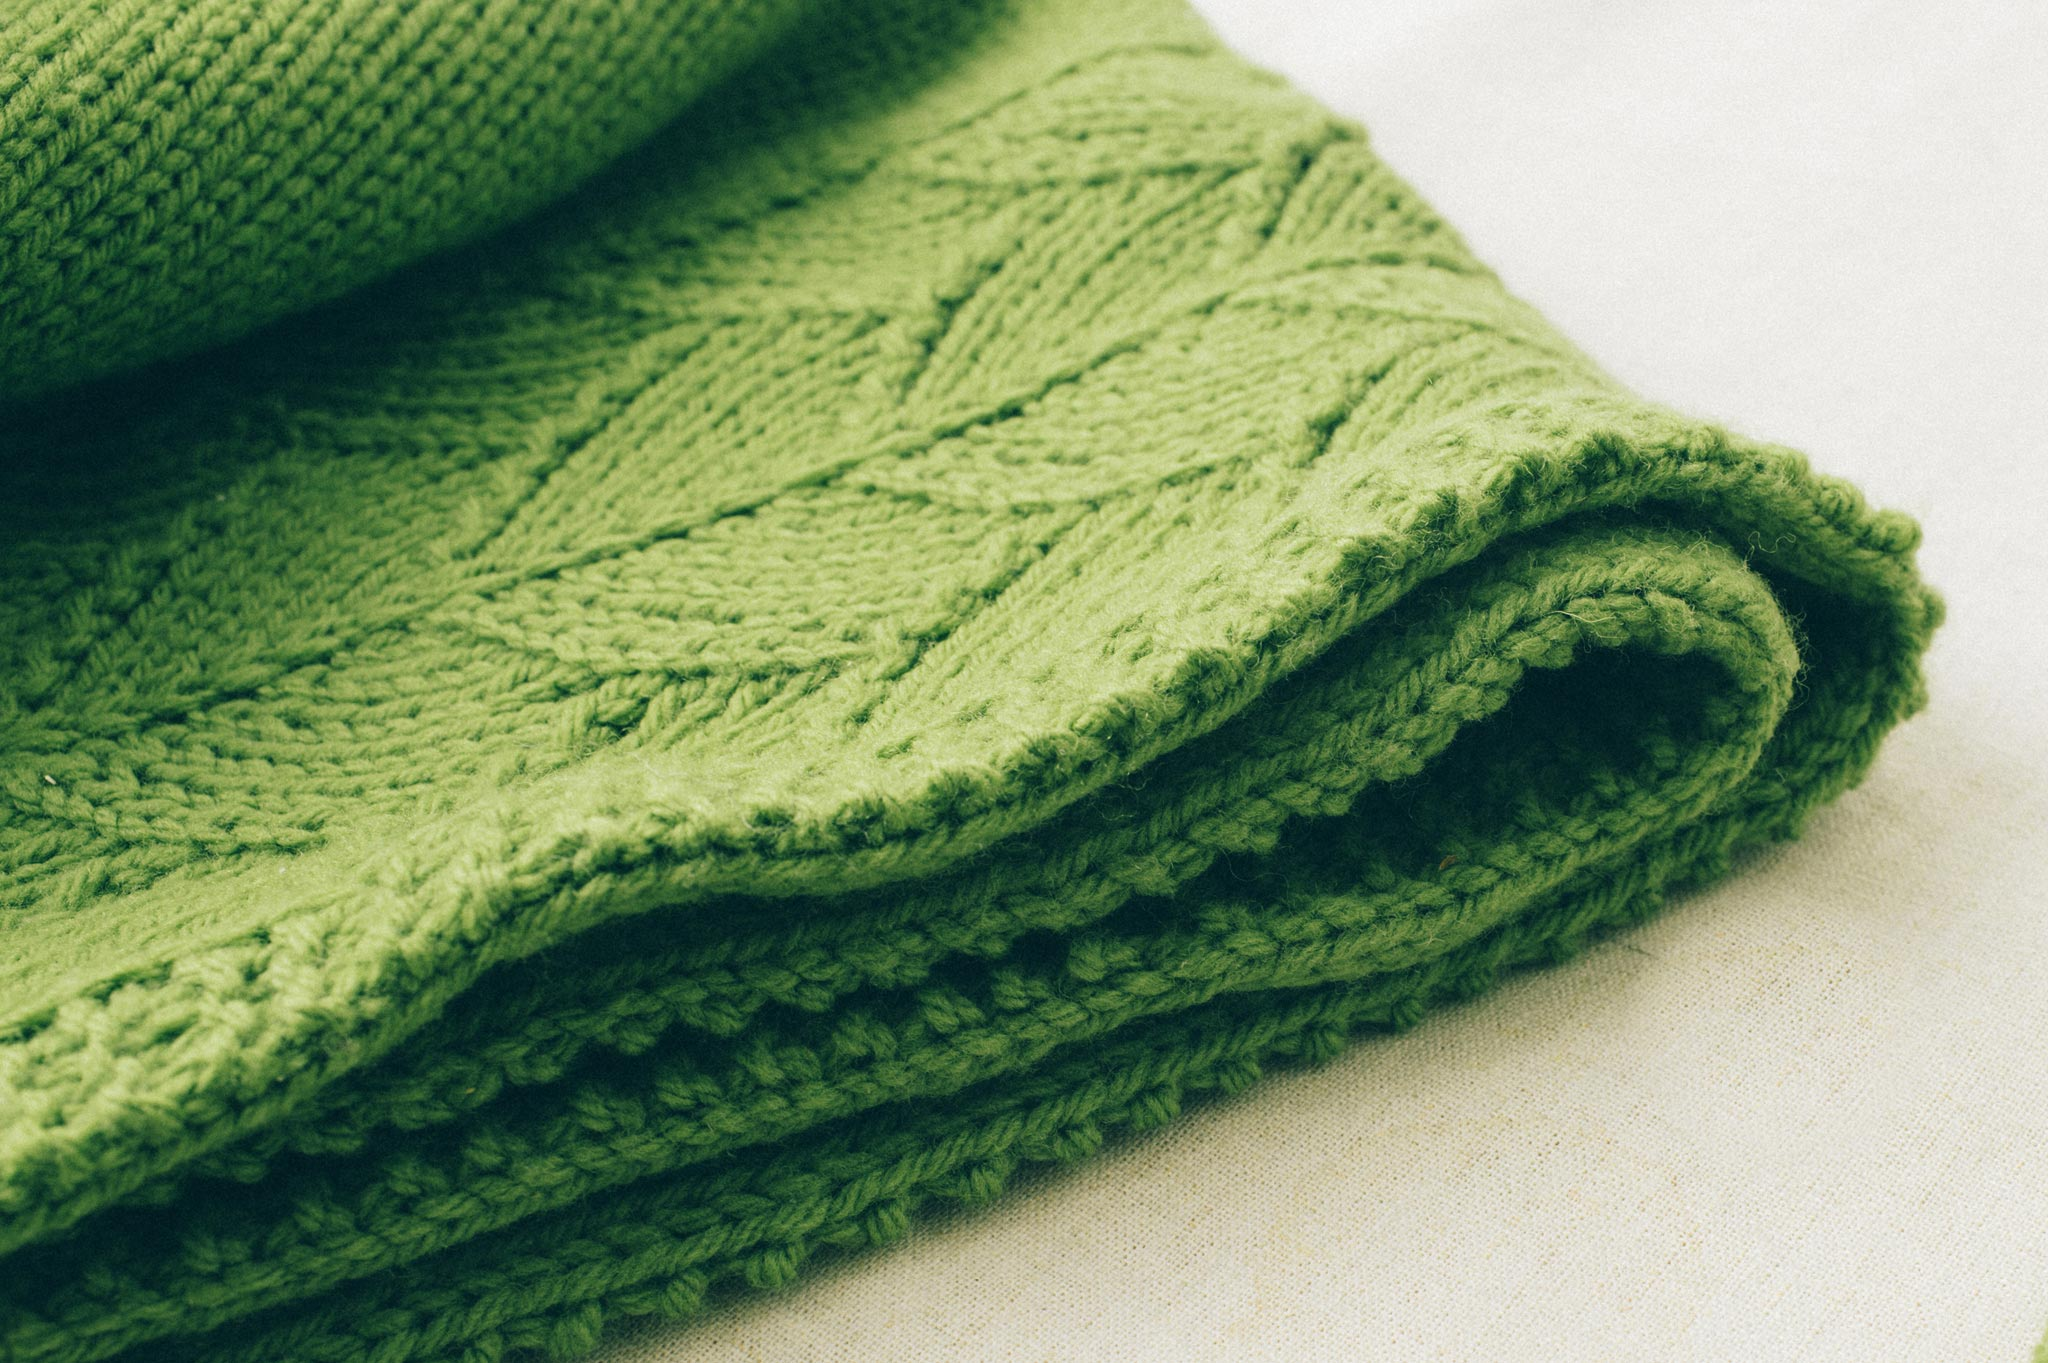 sweet leaf baby blanket knitting pattern - Quince and Co